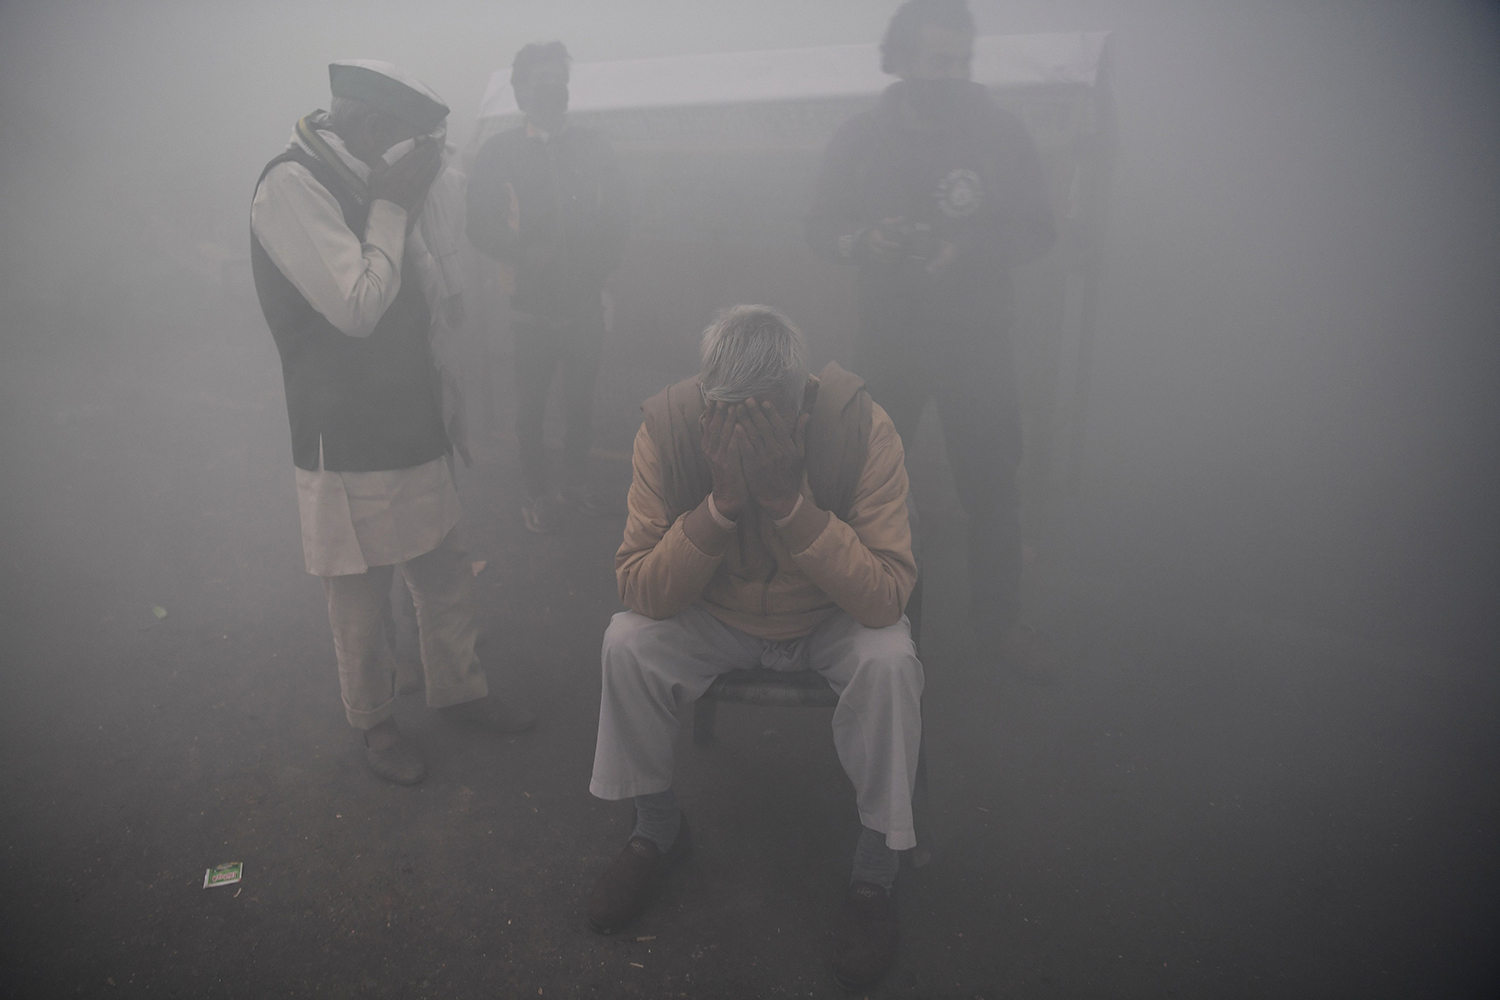 Farmers cover their faces amid fumigation by the municipal corporation near a roadblock at the Delhi-Uttar Pradesh state border in Ghazipur stopping farmers from marching to New Delhi to protest against the central government's recent agricultural reforms Dec. 1. SAJJAD HUSSAIN/AFP via Getty Images